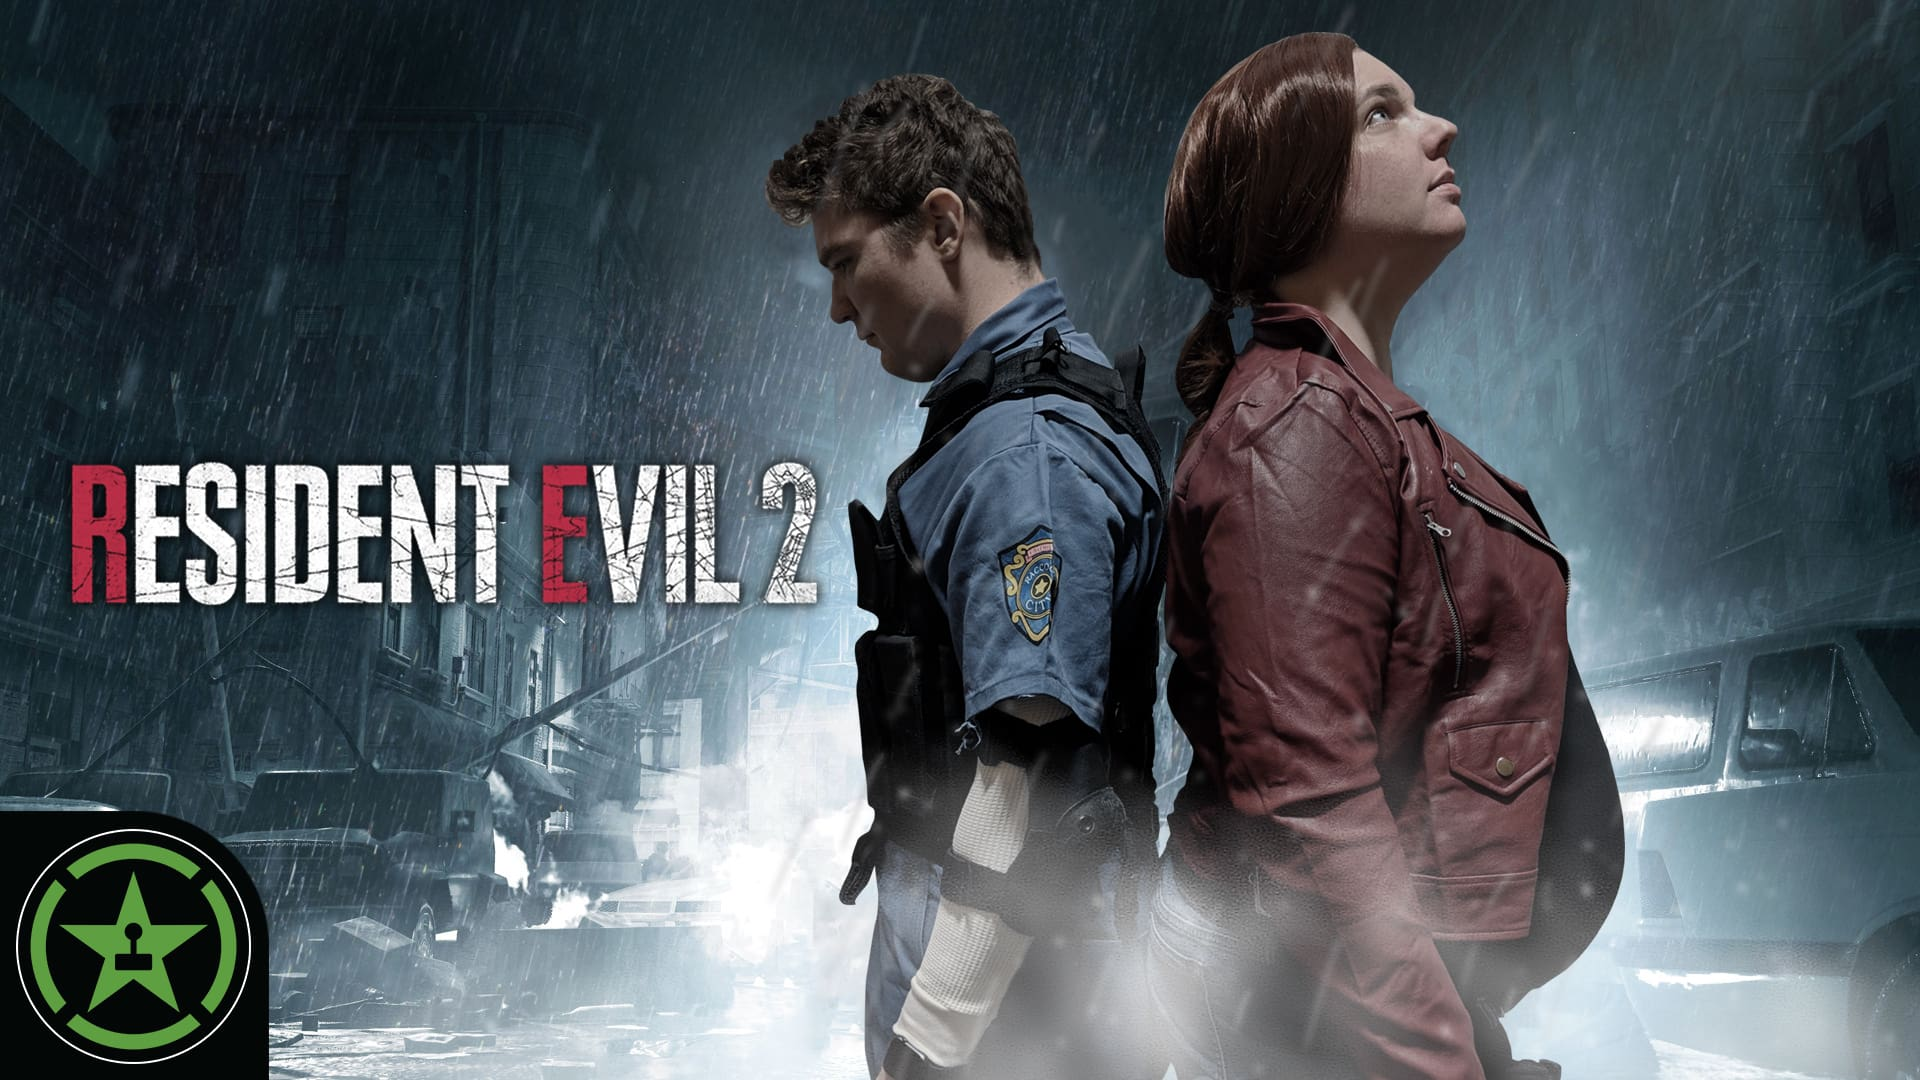 Resident Evil 2 Remake Wallpaper Hd Posted By Ethan Tremblay